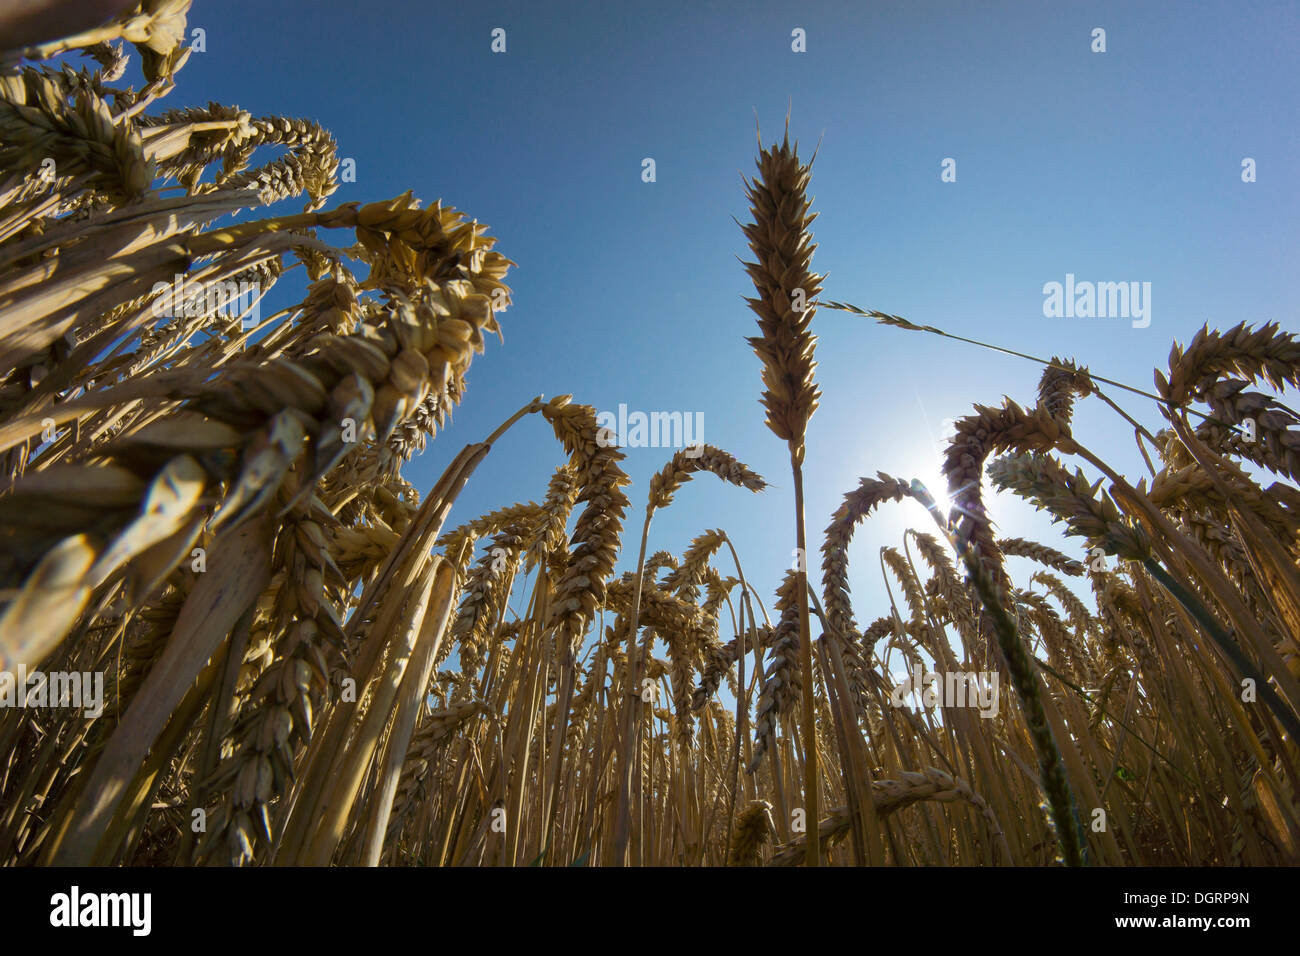 Wheat field, cornfield, worm's eye view, Ostheim, Nidderau, Hesse, Germany - Stock Image